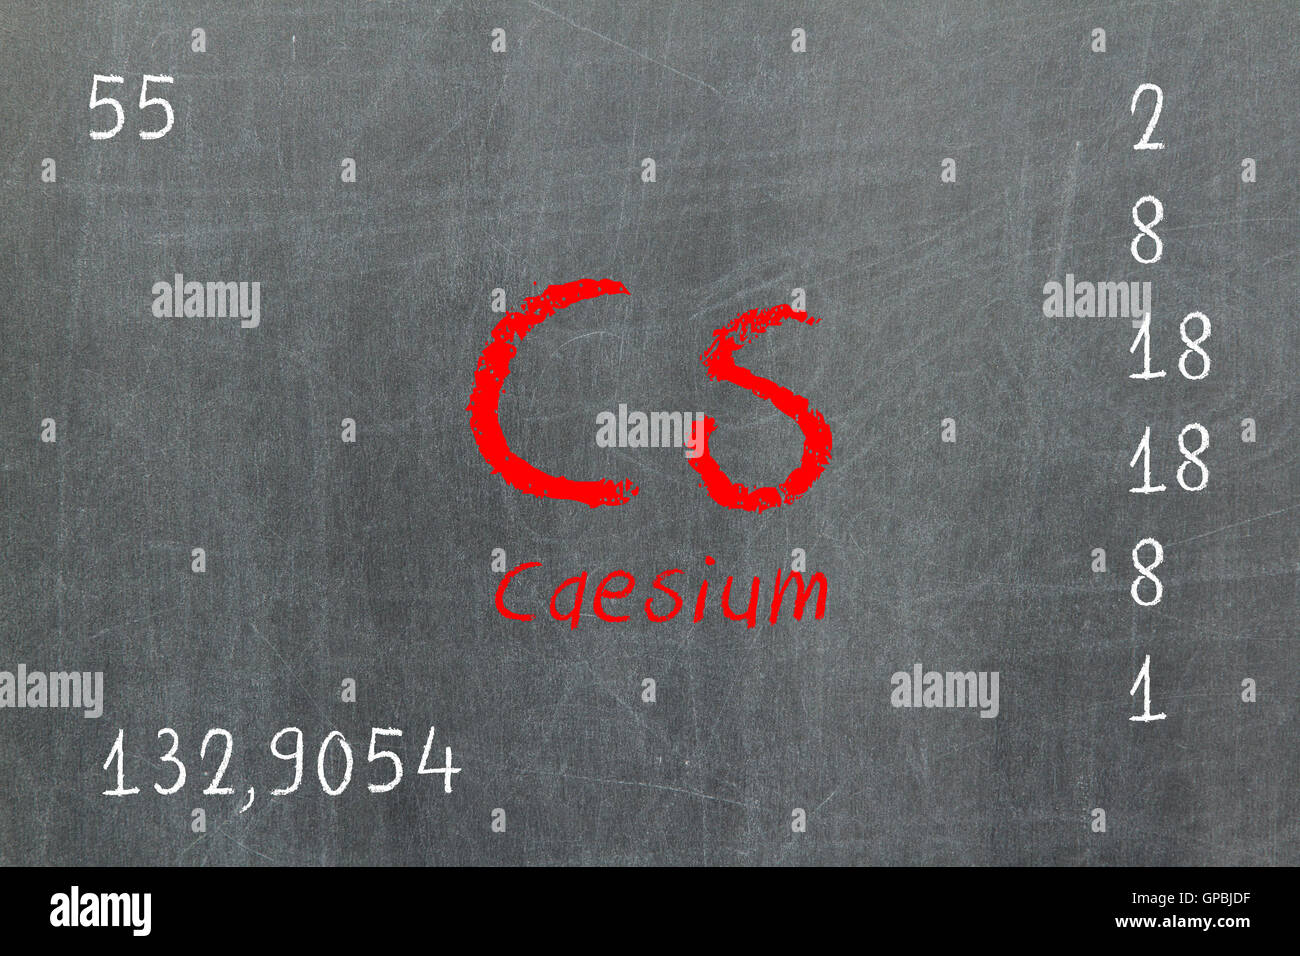 Periodic table caesium image collections periodic table images periodic table caesium gallery periodic table images periodic table caesium images periodic table images periodic table gamestrikefo Images